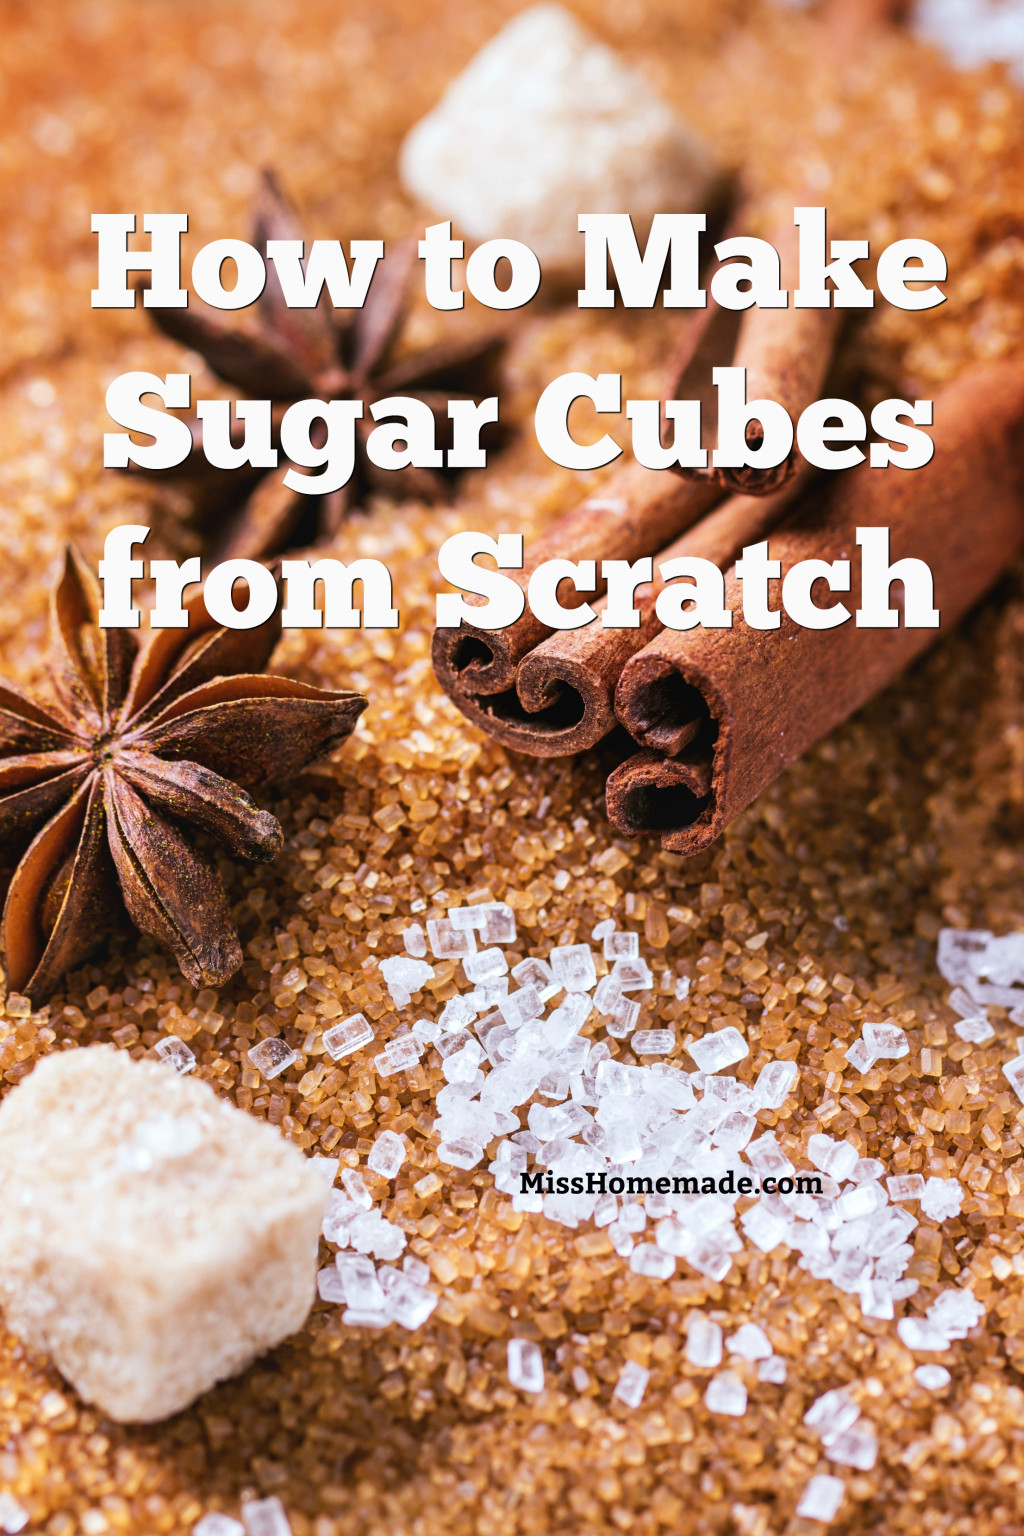 How to make Sugar Rocks from Scratch - this and more at MissHomemade.com